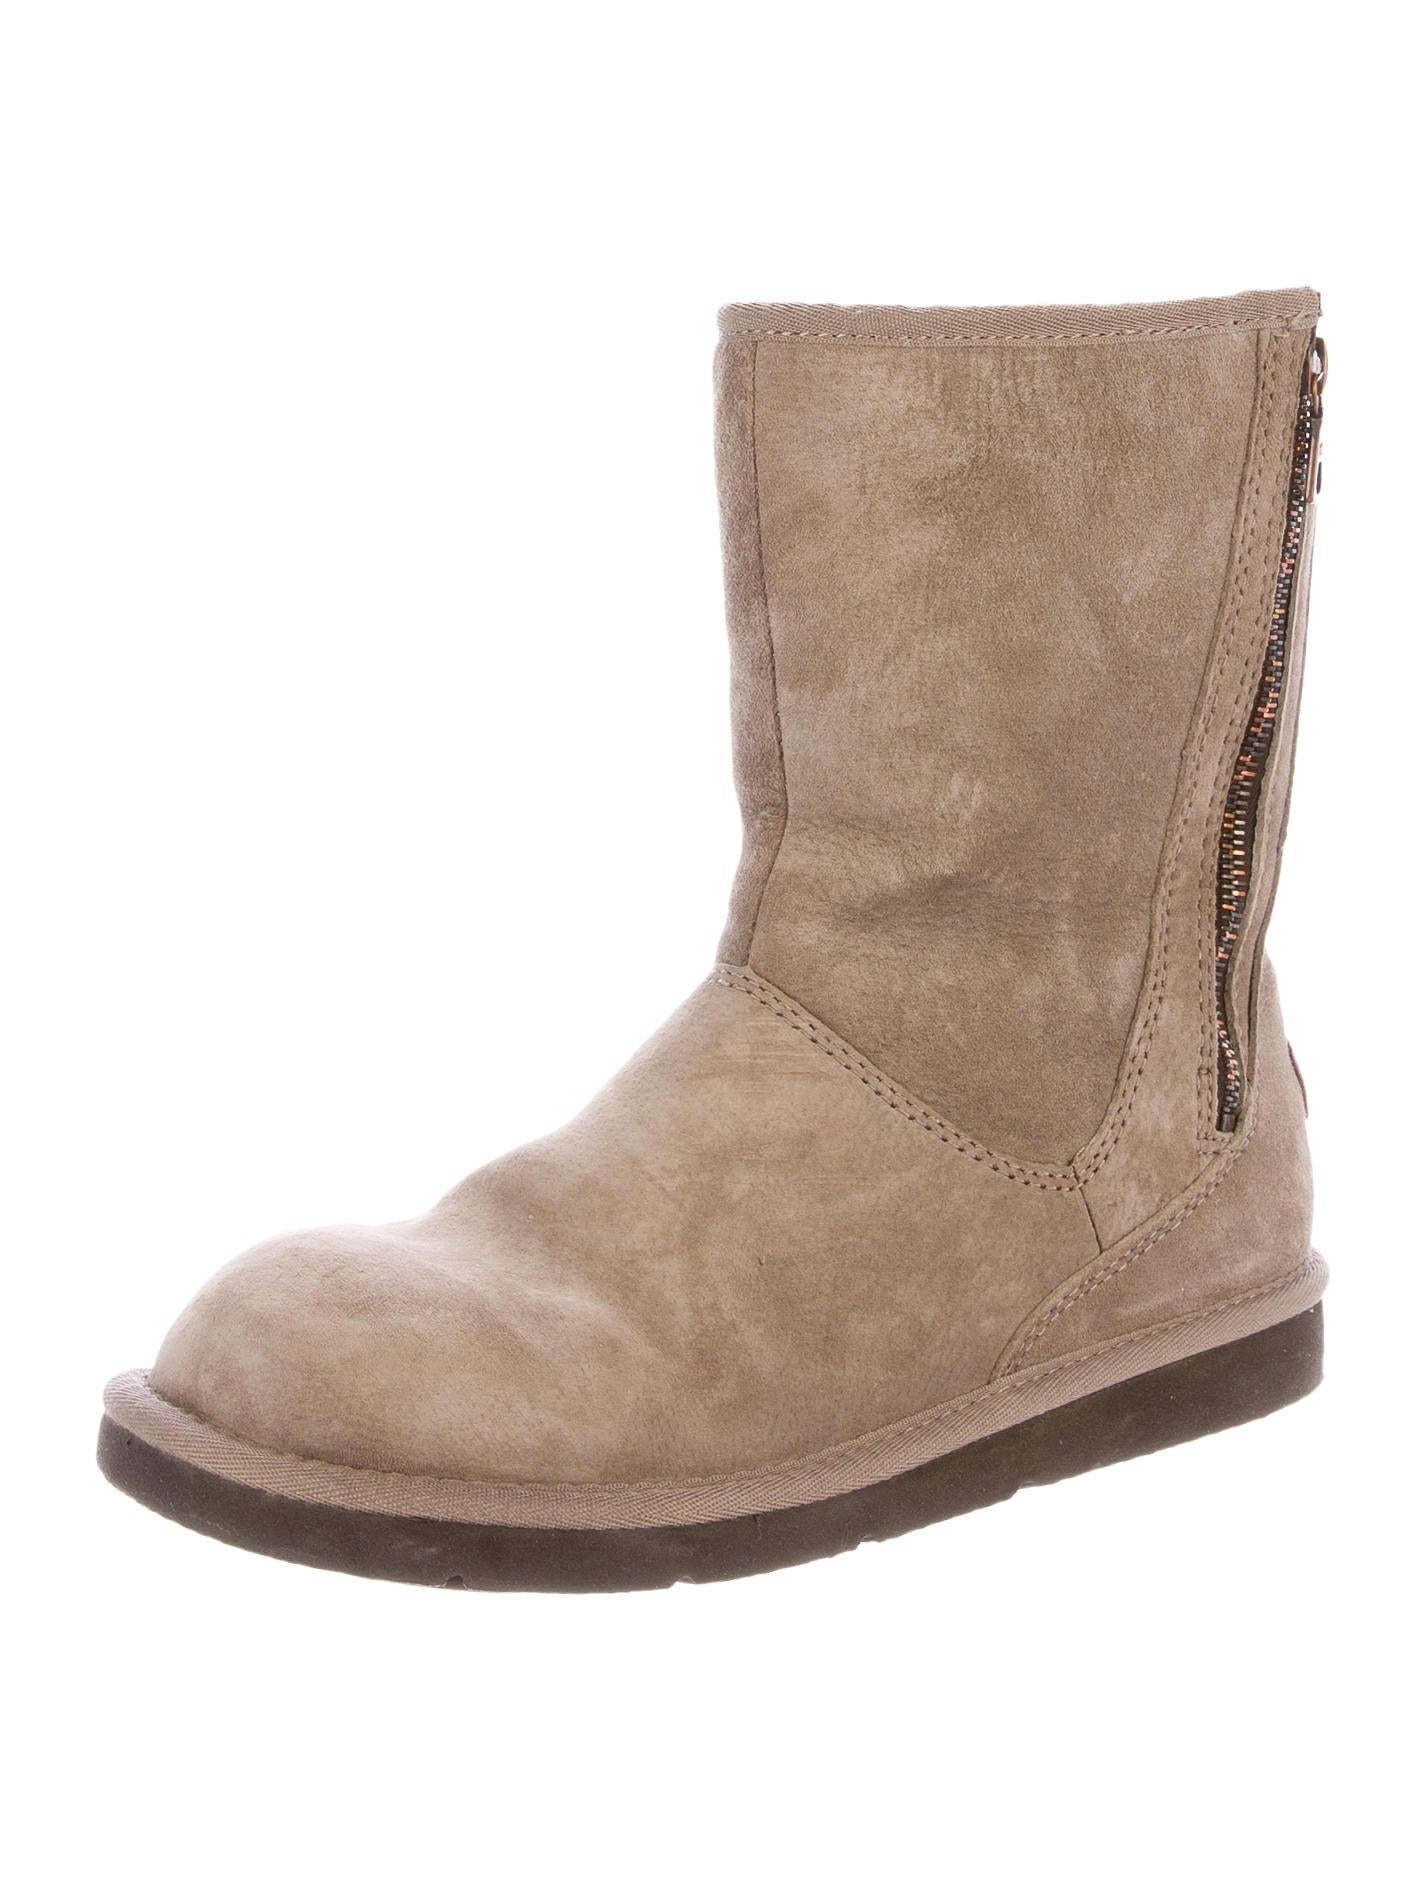 ugg australia suede ankle boots shoes wuugg21206 the